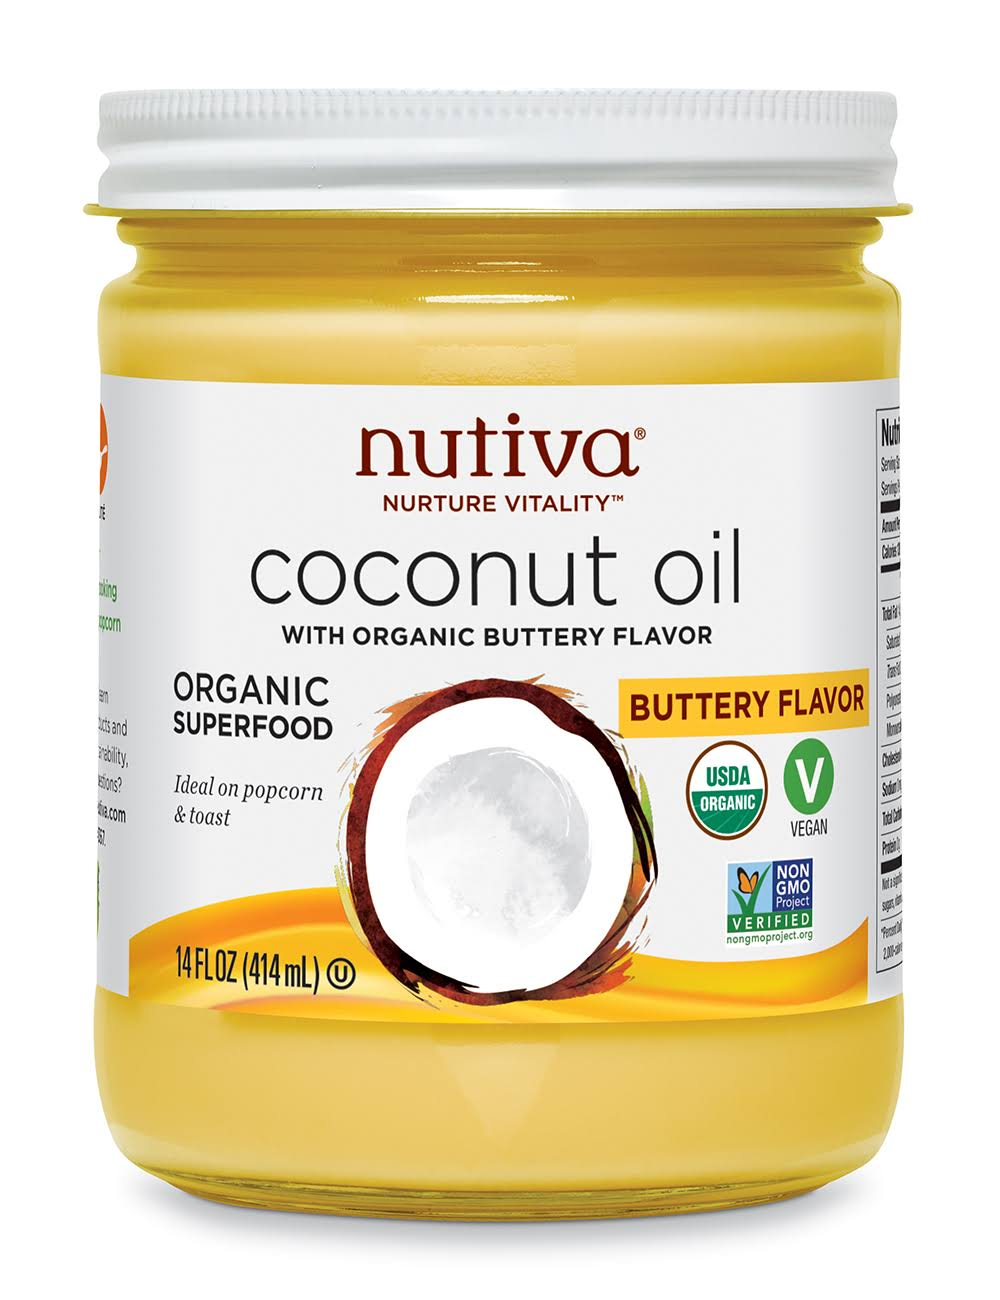 Nutiva Coconut Oil - with Organic Buttery Flavor, 14oz